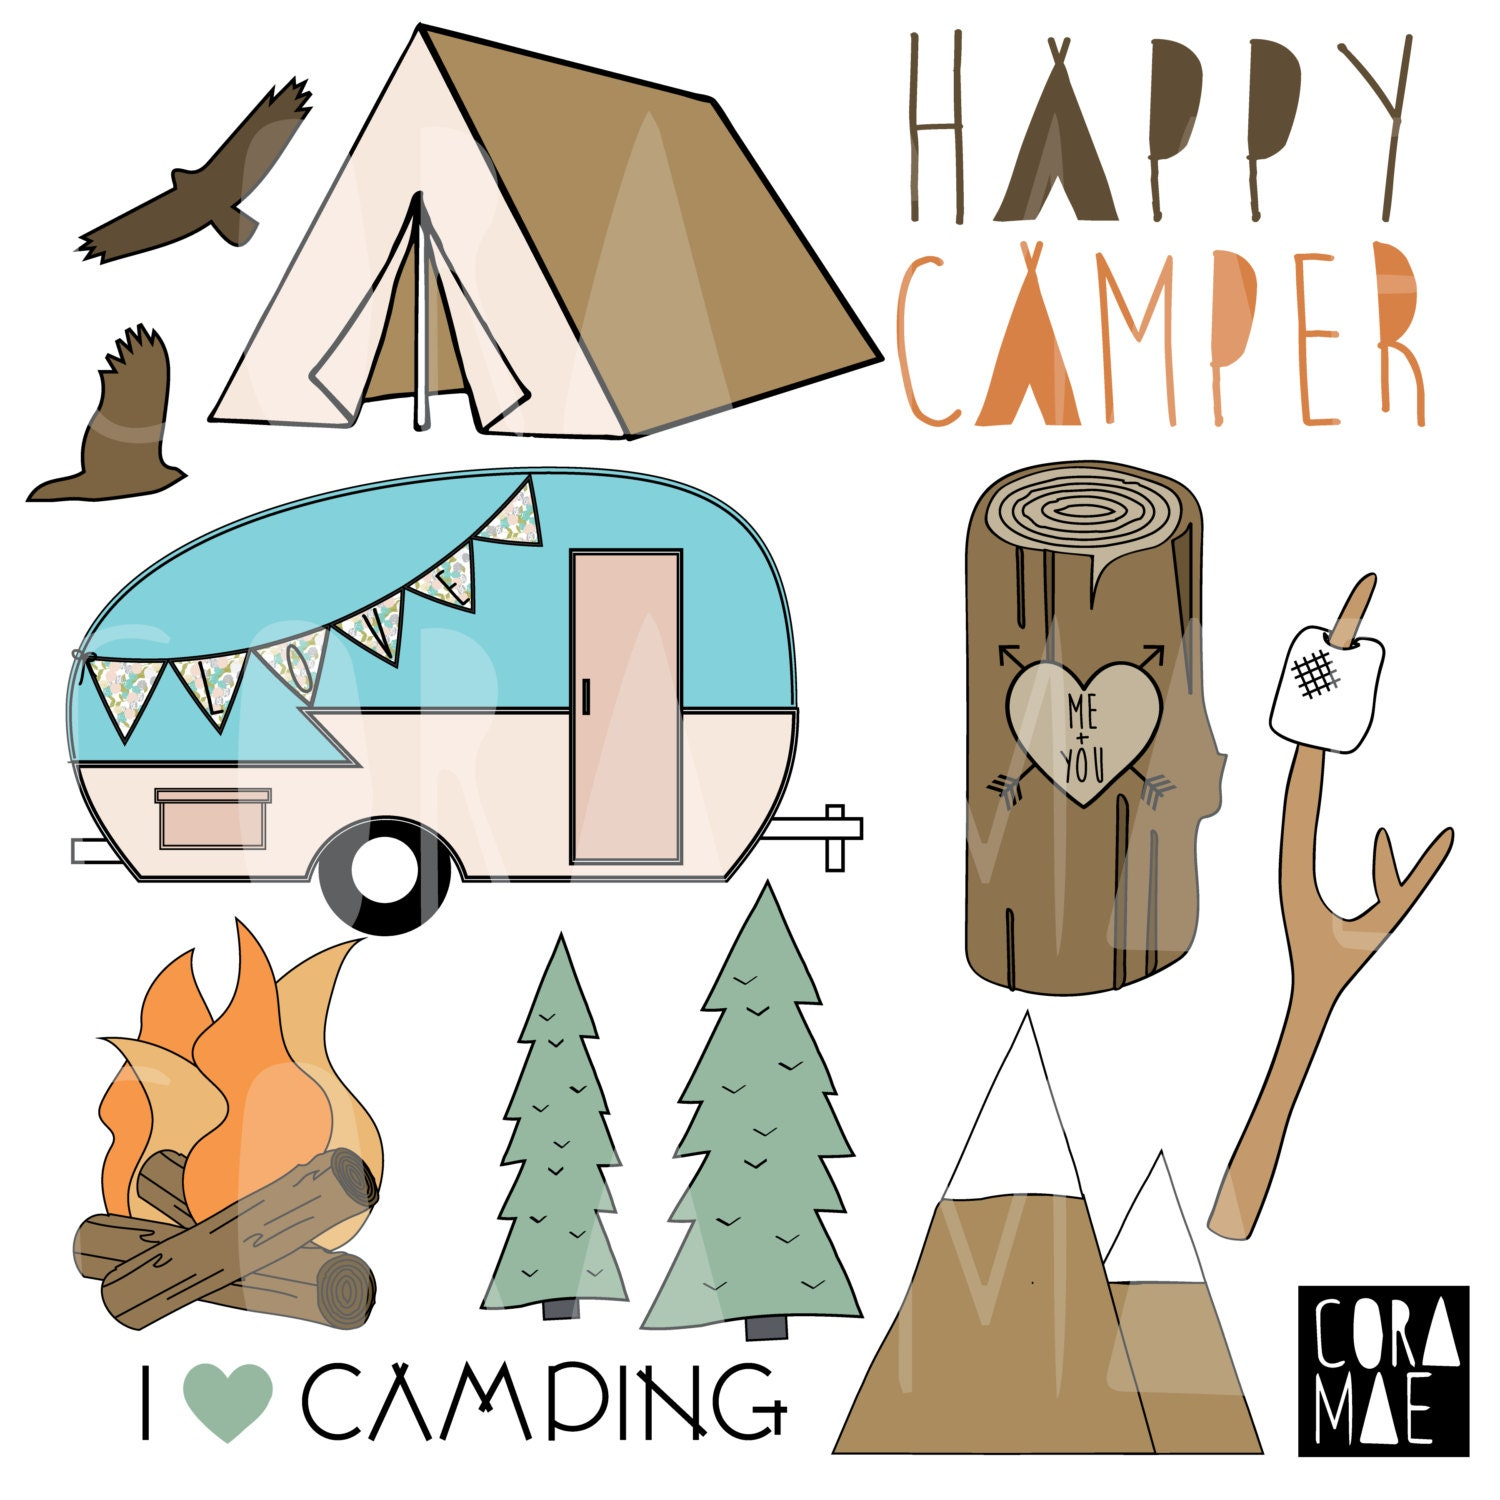 Happy Camper Clipart. 12 PNG files. Transparent background.